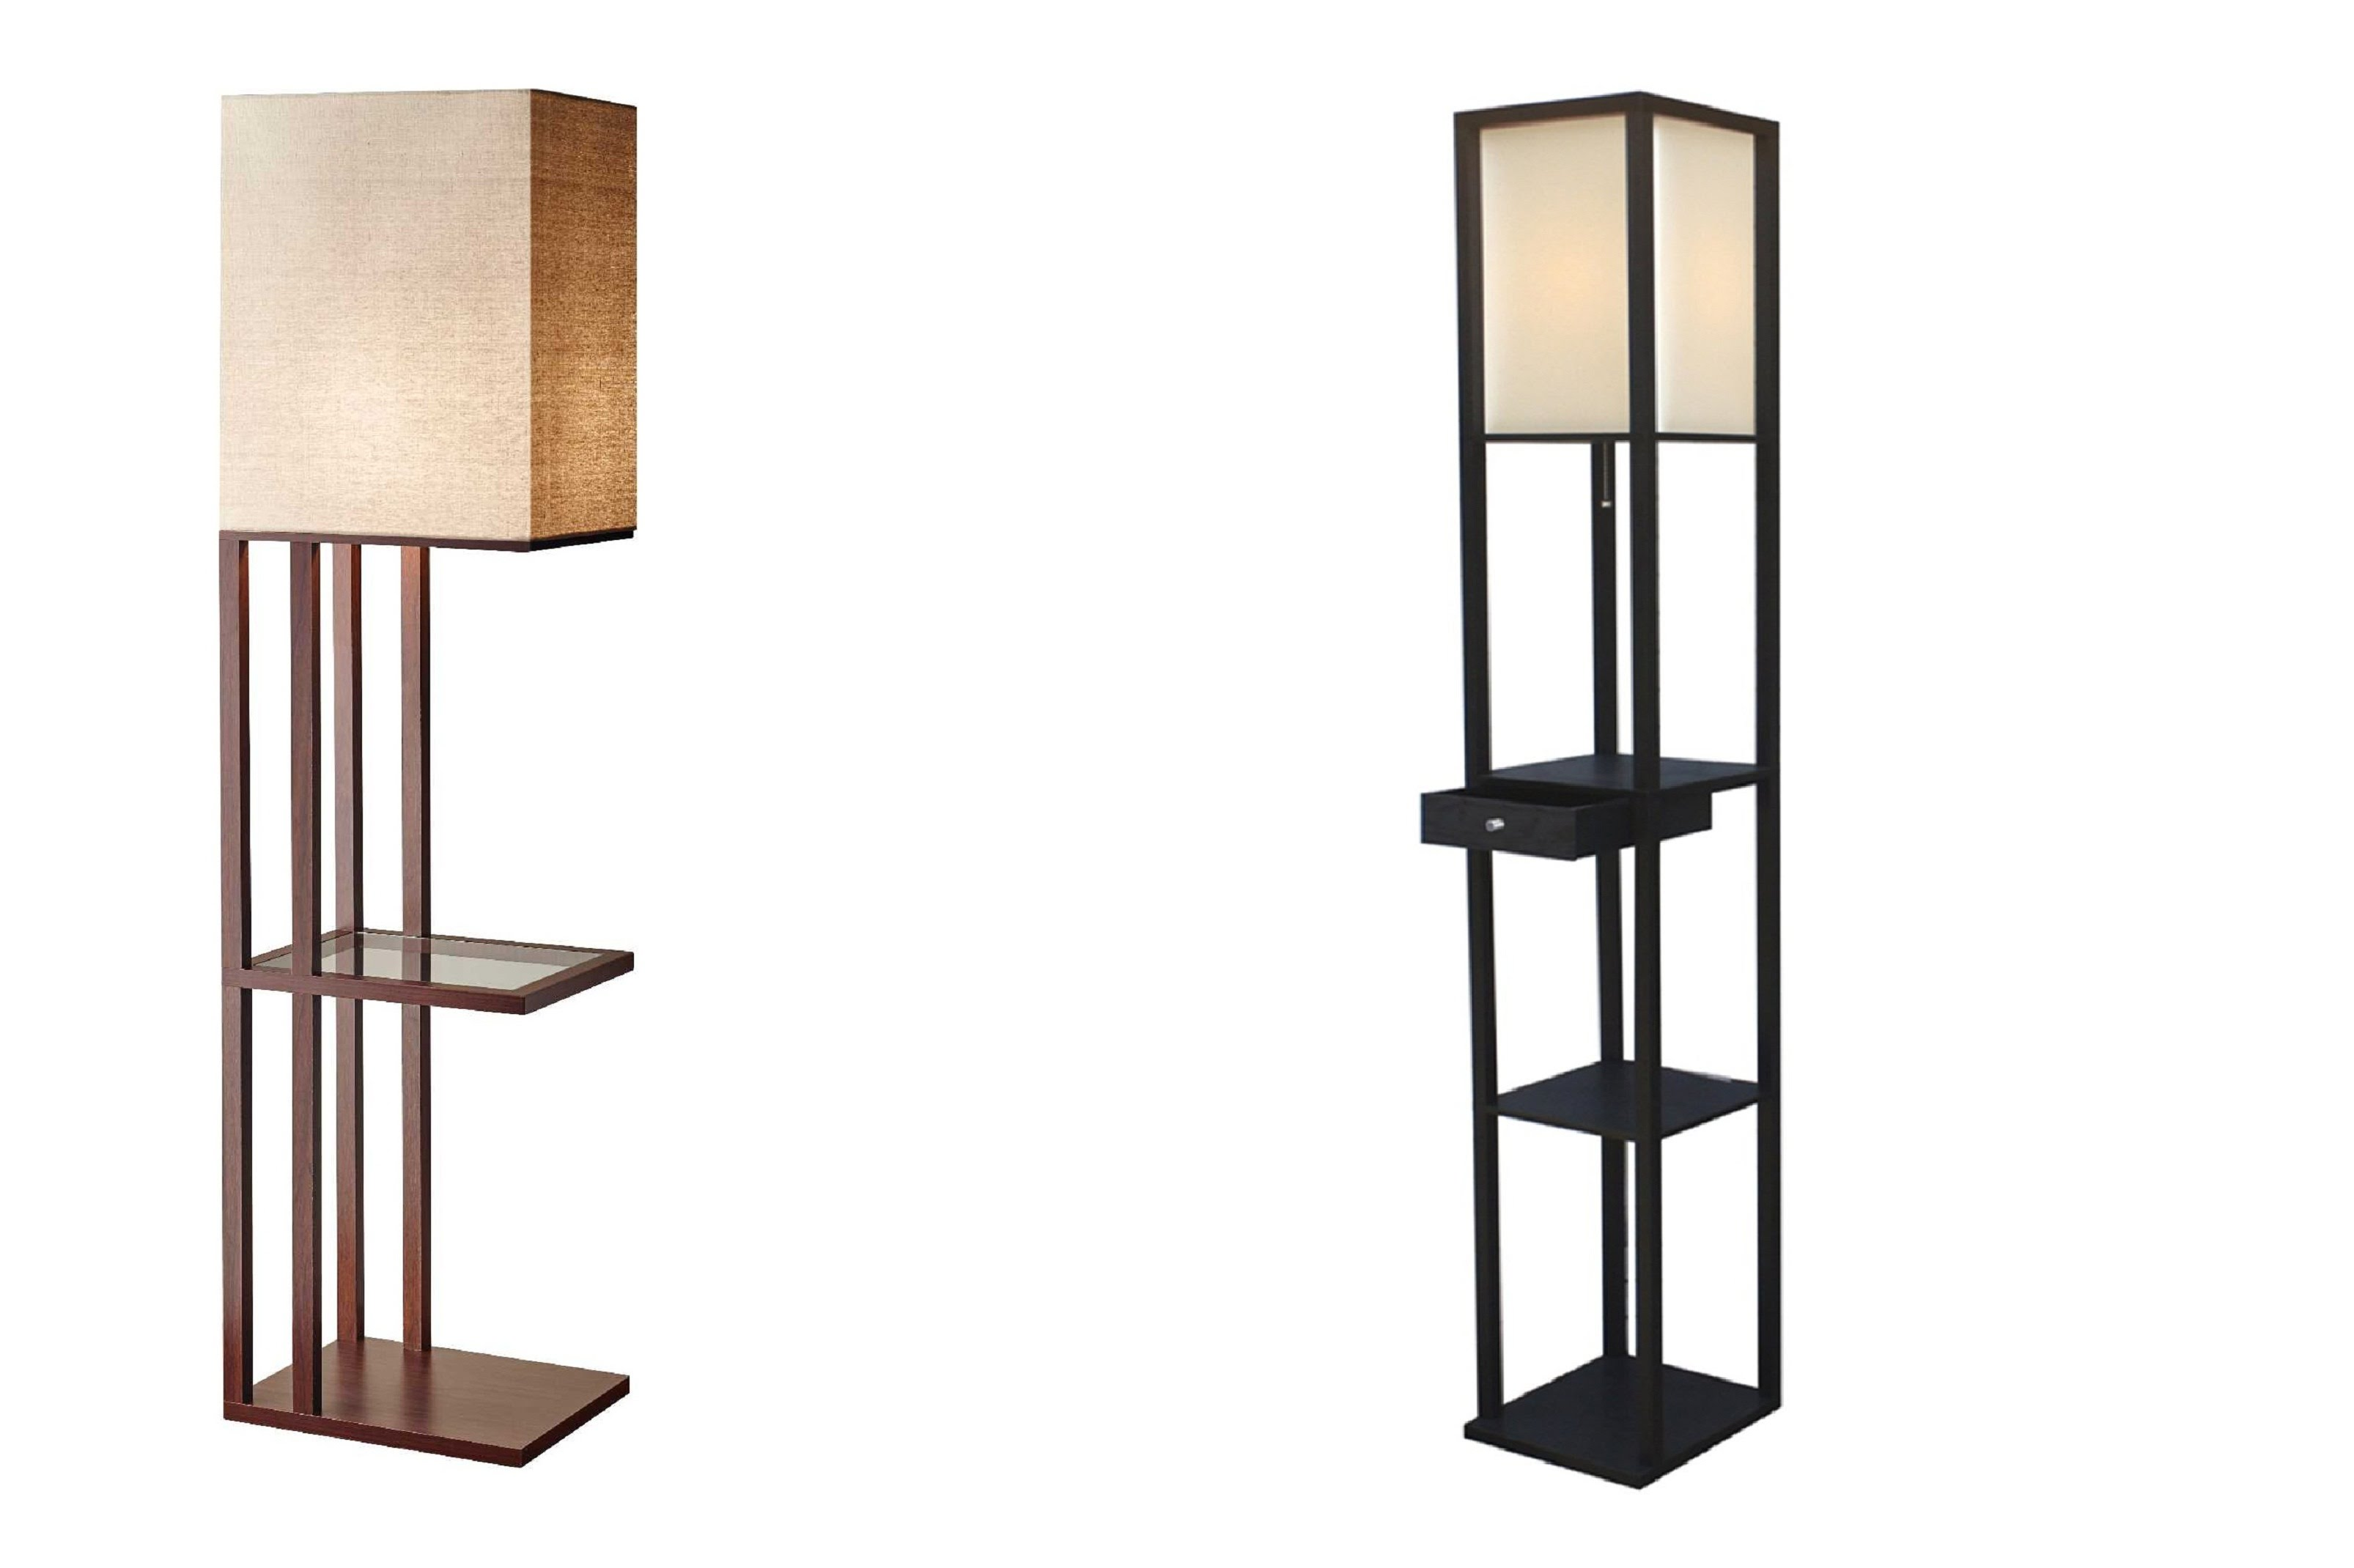 10 things to consider before buying floor lamp with Floor lamp with shelves